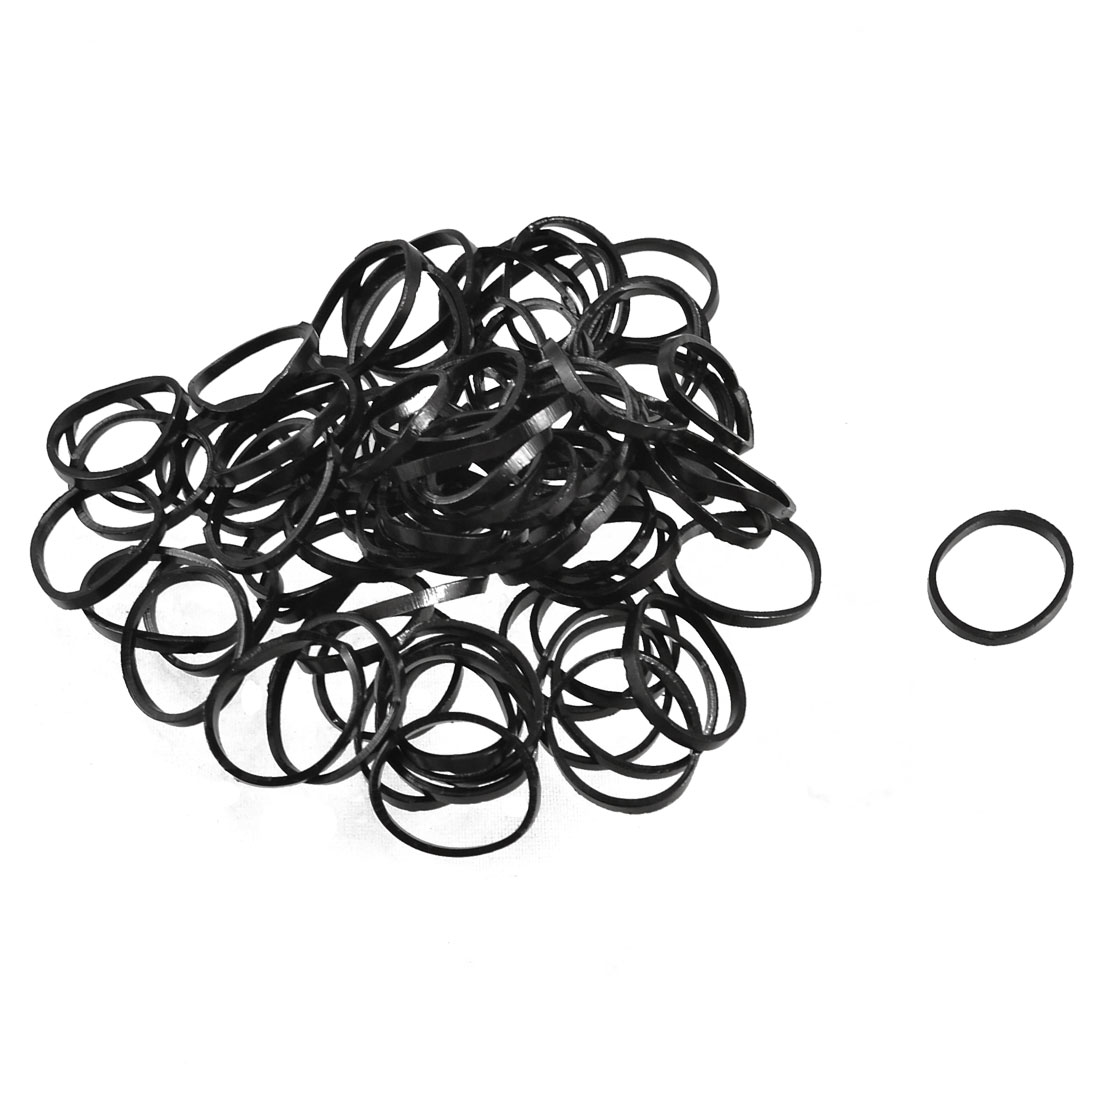 Rubber Band (5gm) 8be2c8360d1